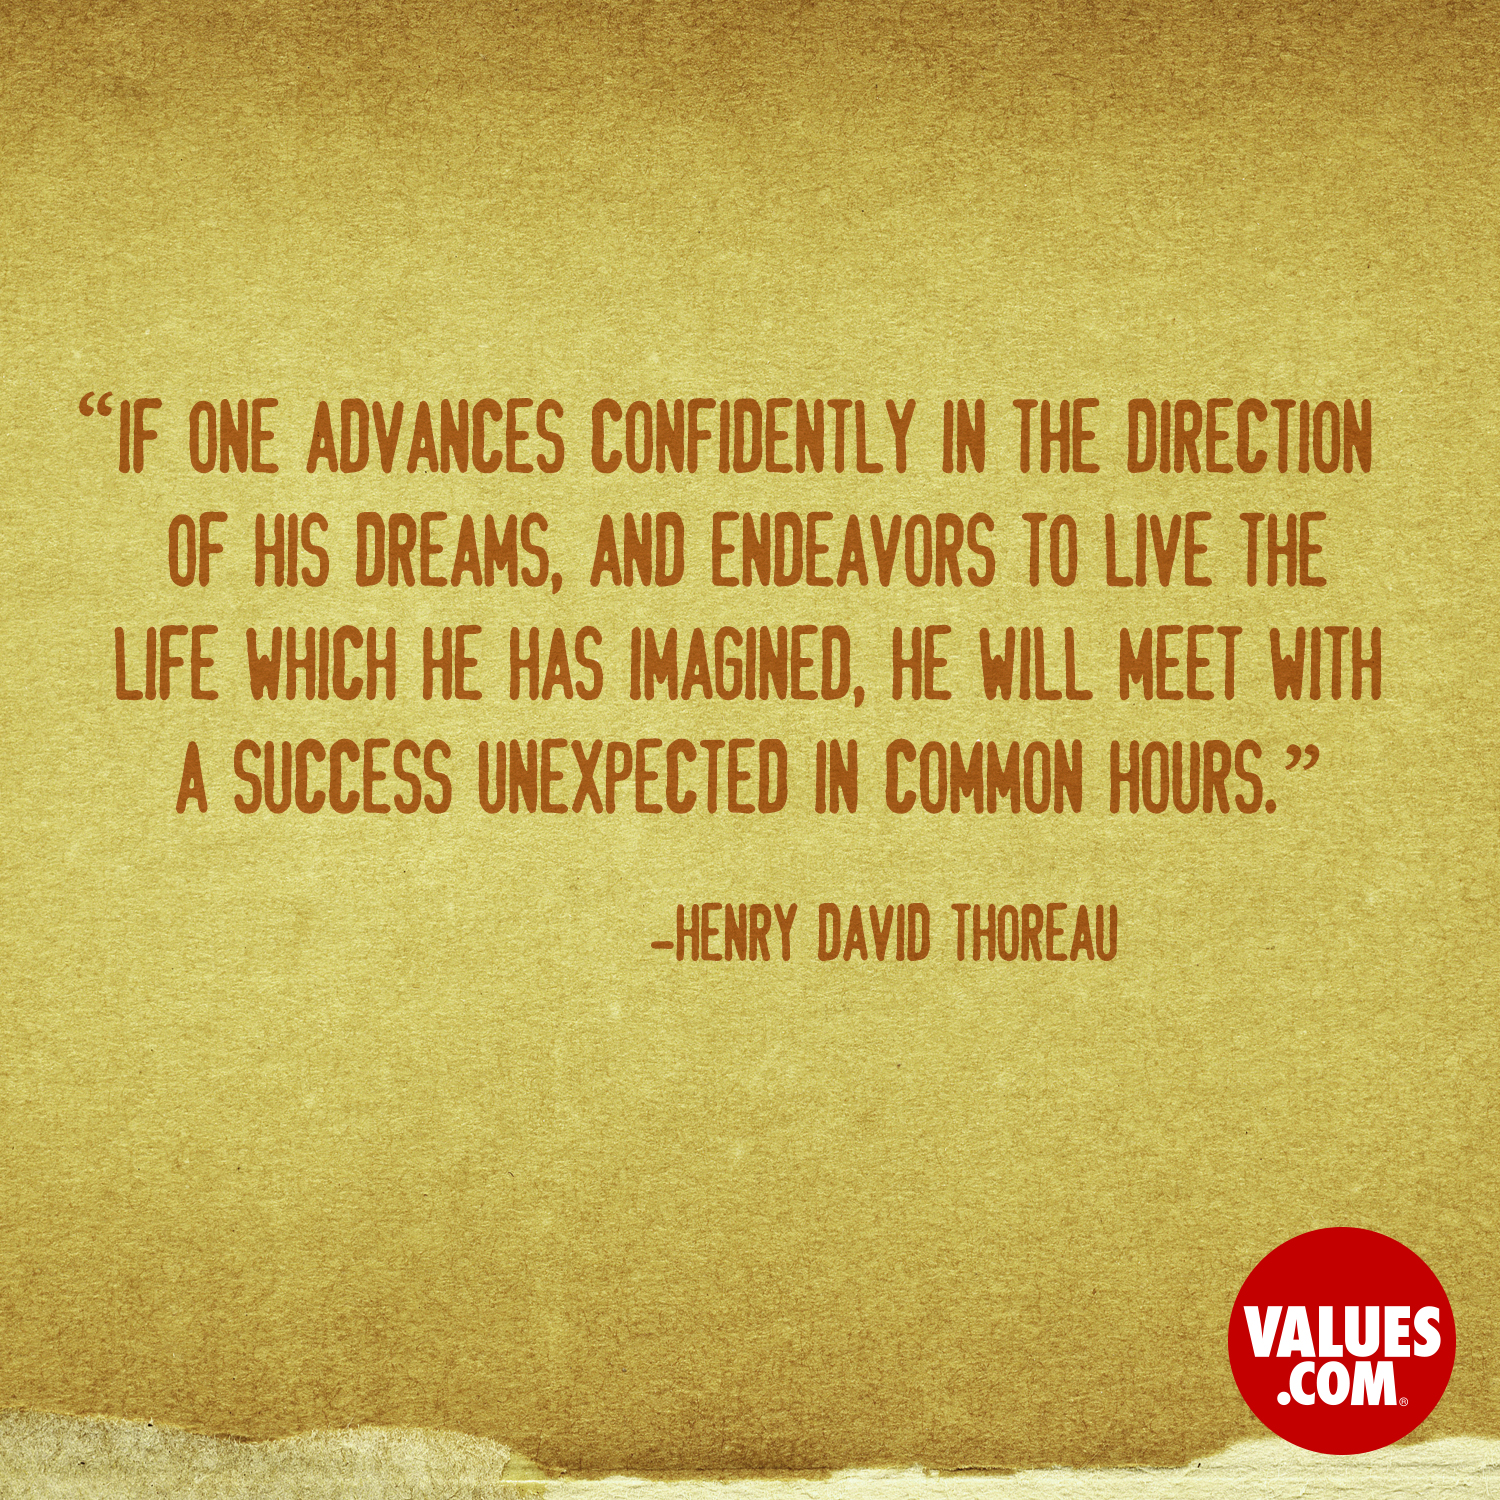 If one advances confidently in the direction of his dreams, and endeavors to live the life which he has imagined, he will meet with a success unexpected in common hours. —Henry David Thoreau